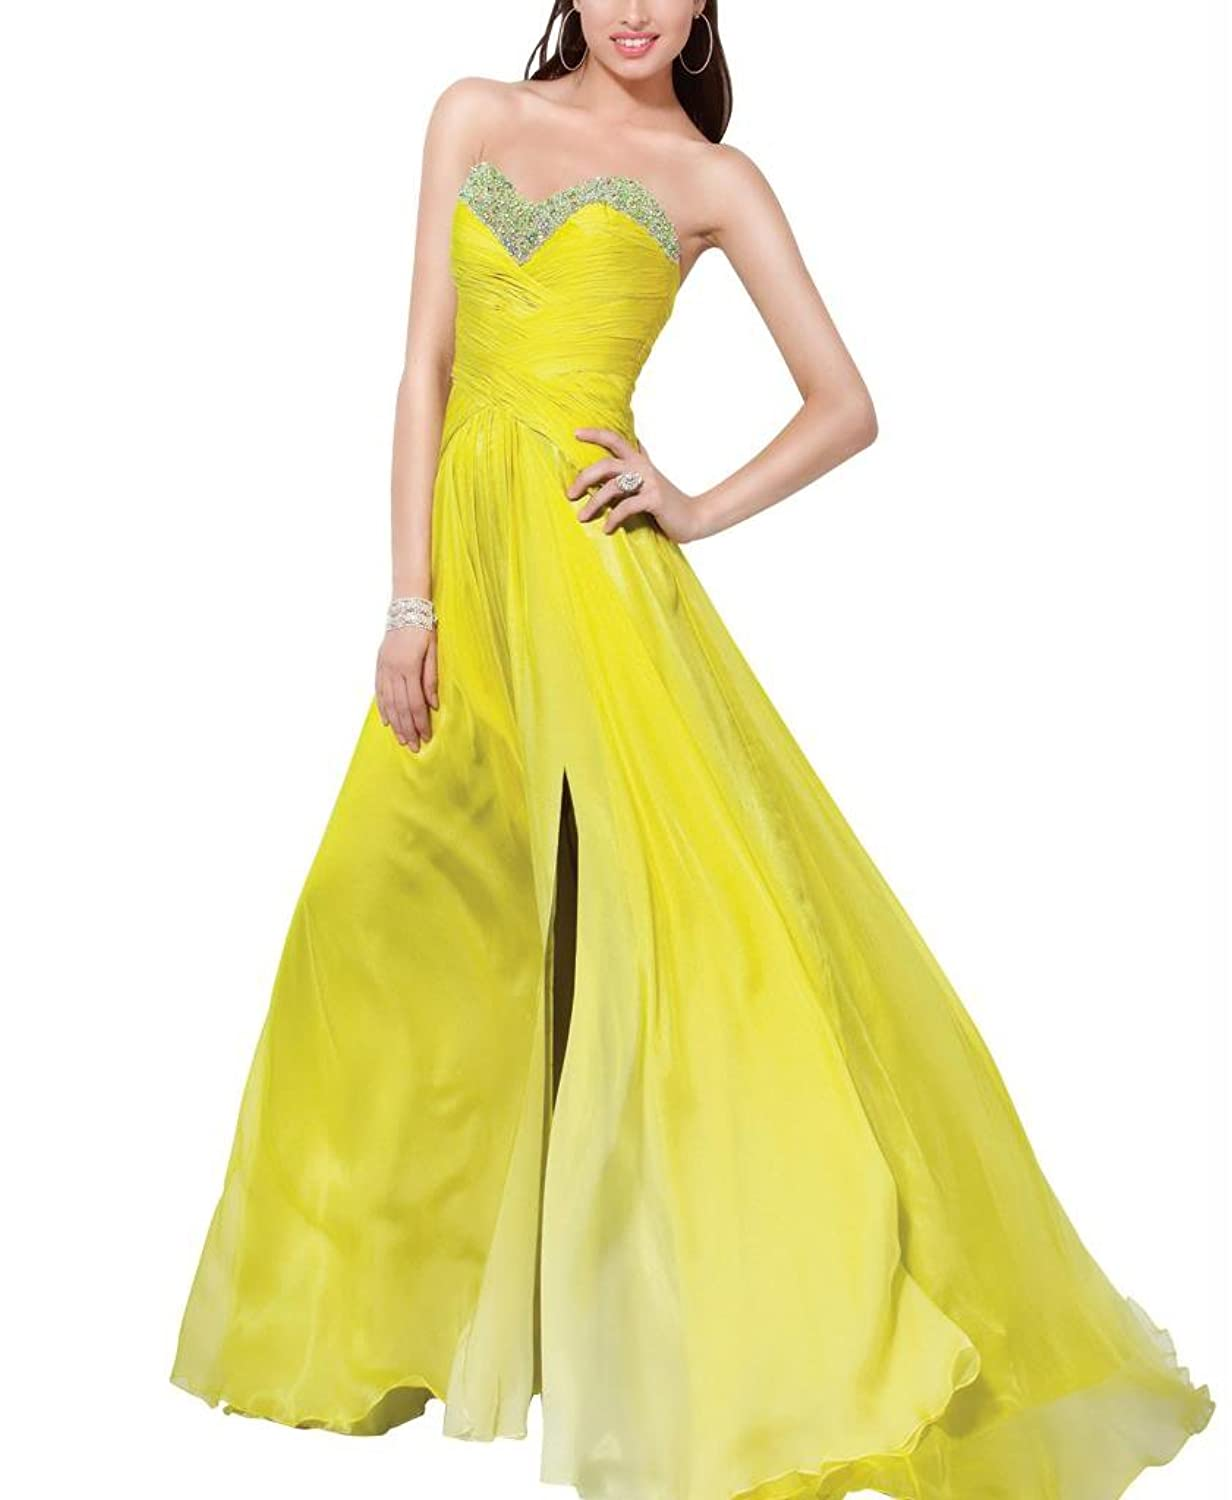 GEORGE BRIDE Sheath/ Column Strapless Floor Length Evening Dress With Beaded Appliques